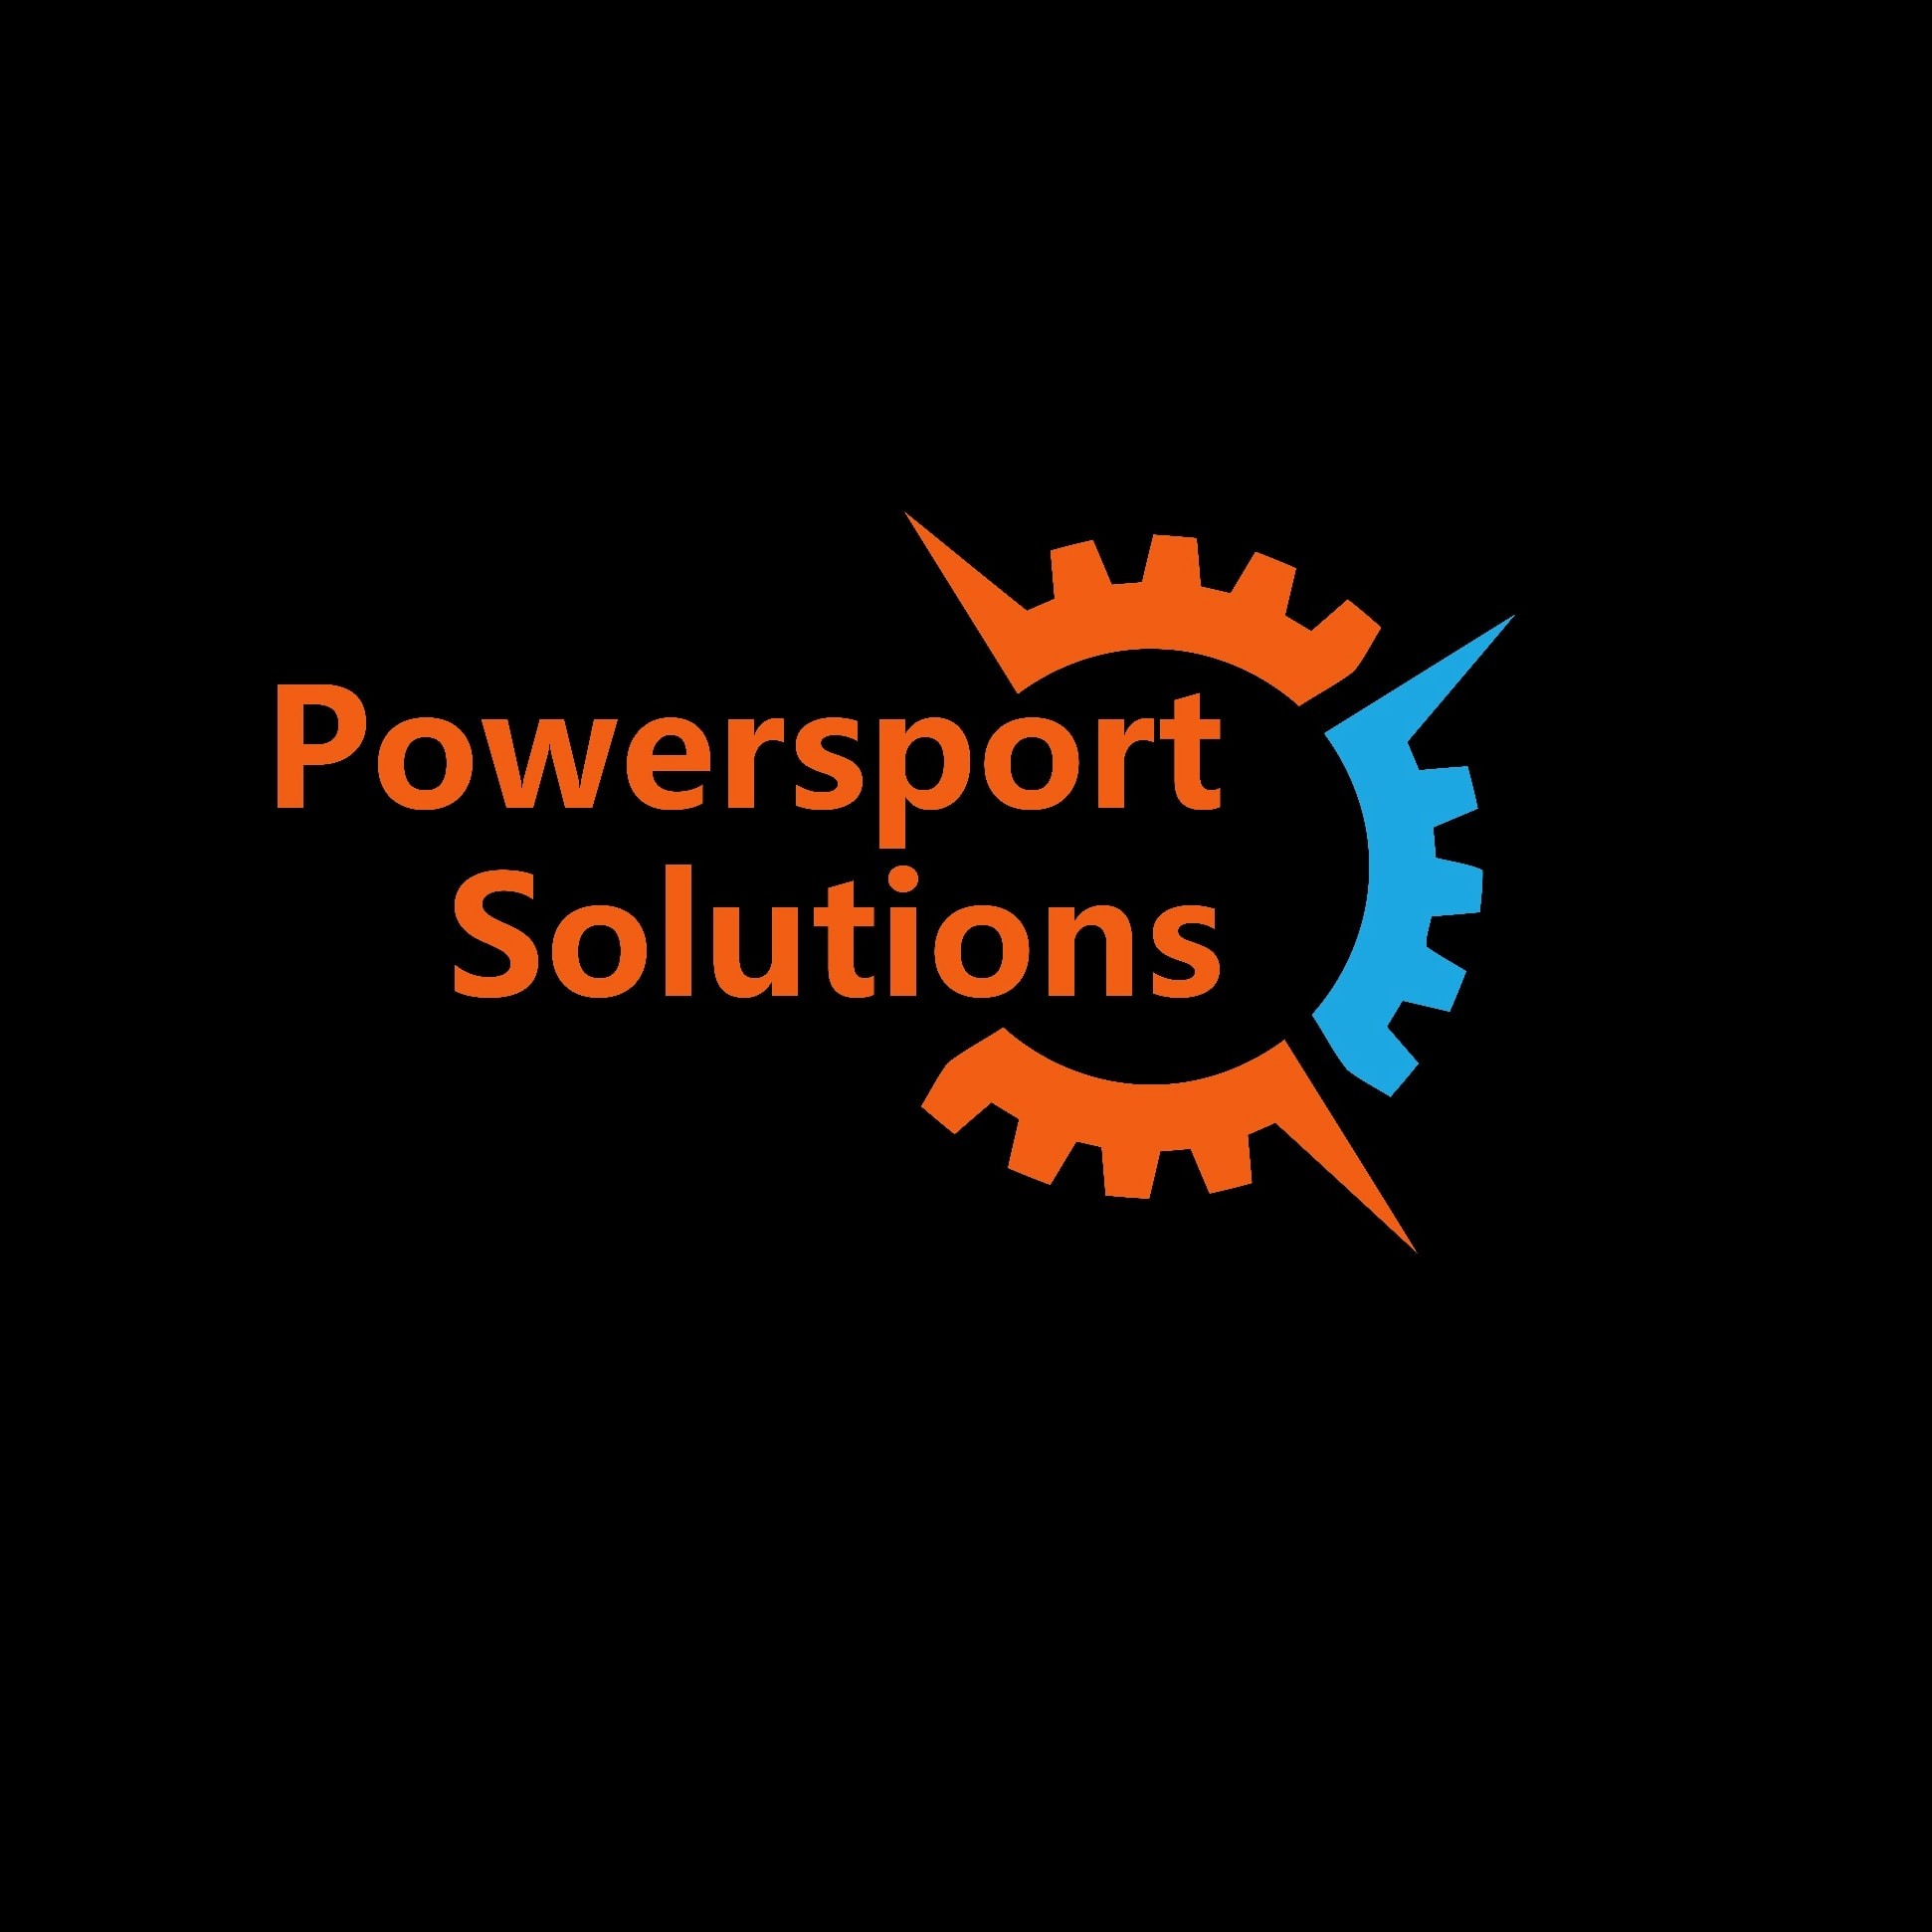 Job opening at Powersport Solutions